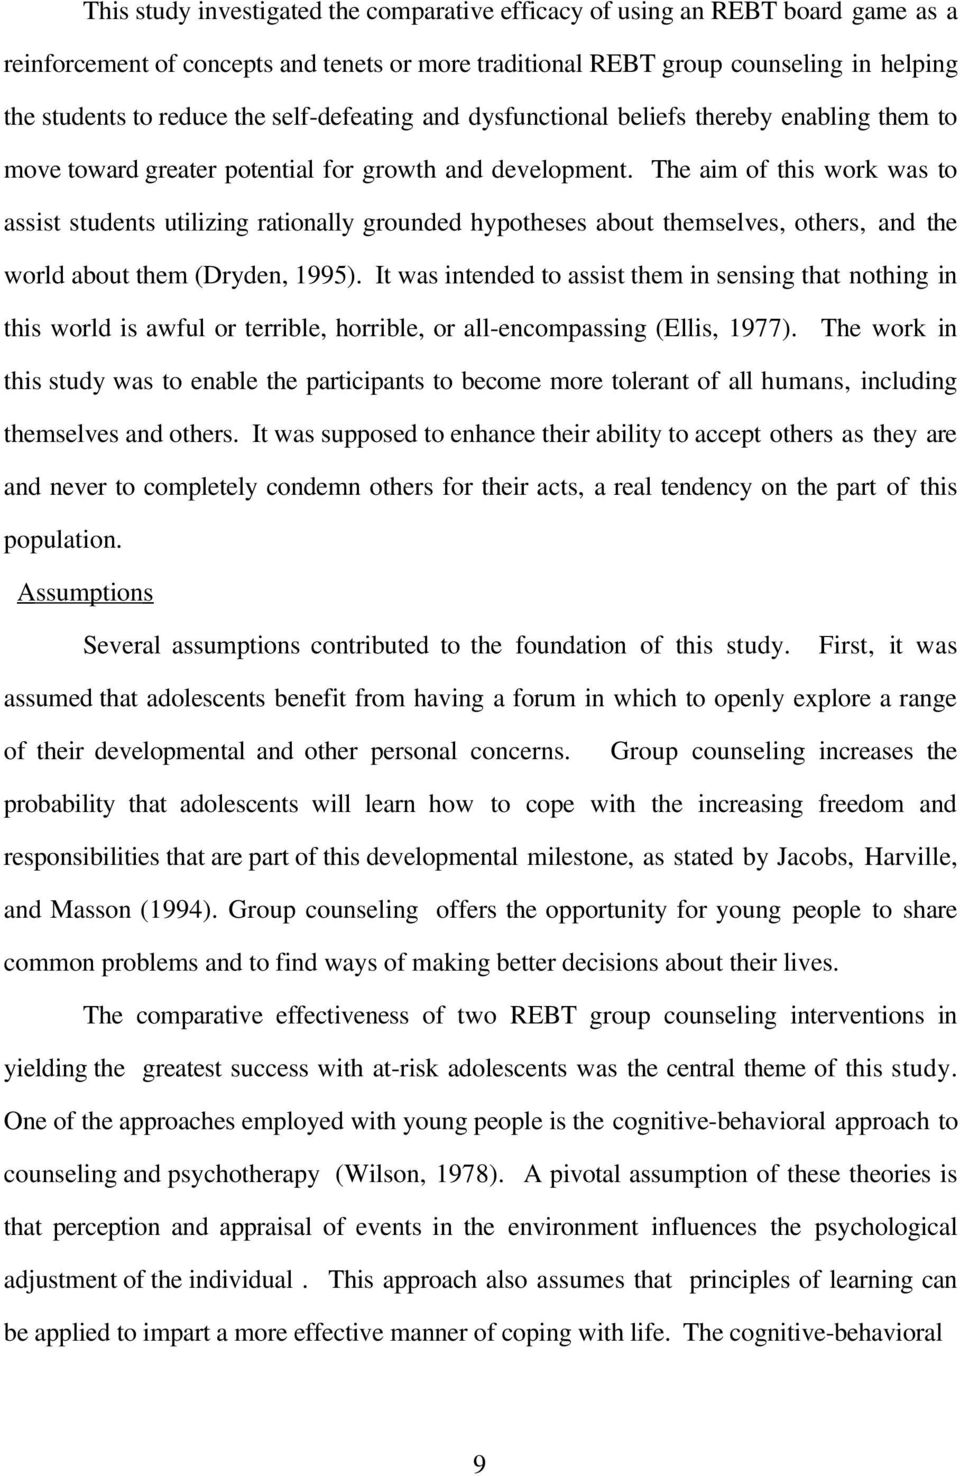 The aim of this work was to assist students utilizing rationally grounded hypotheses about themselves, others, and the world about them (Dryden, 1995).